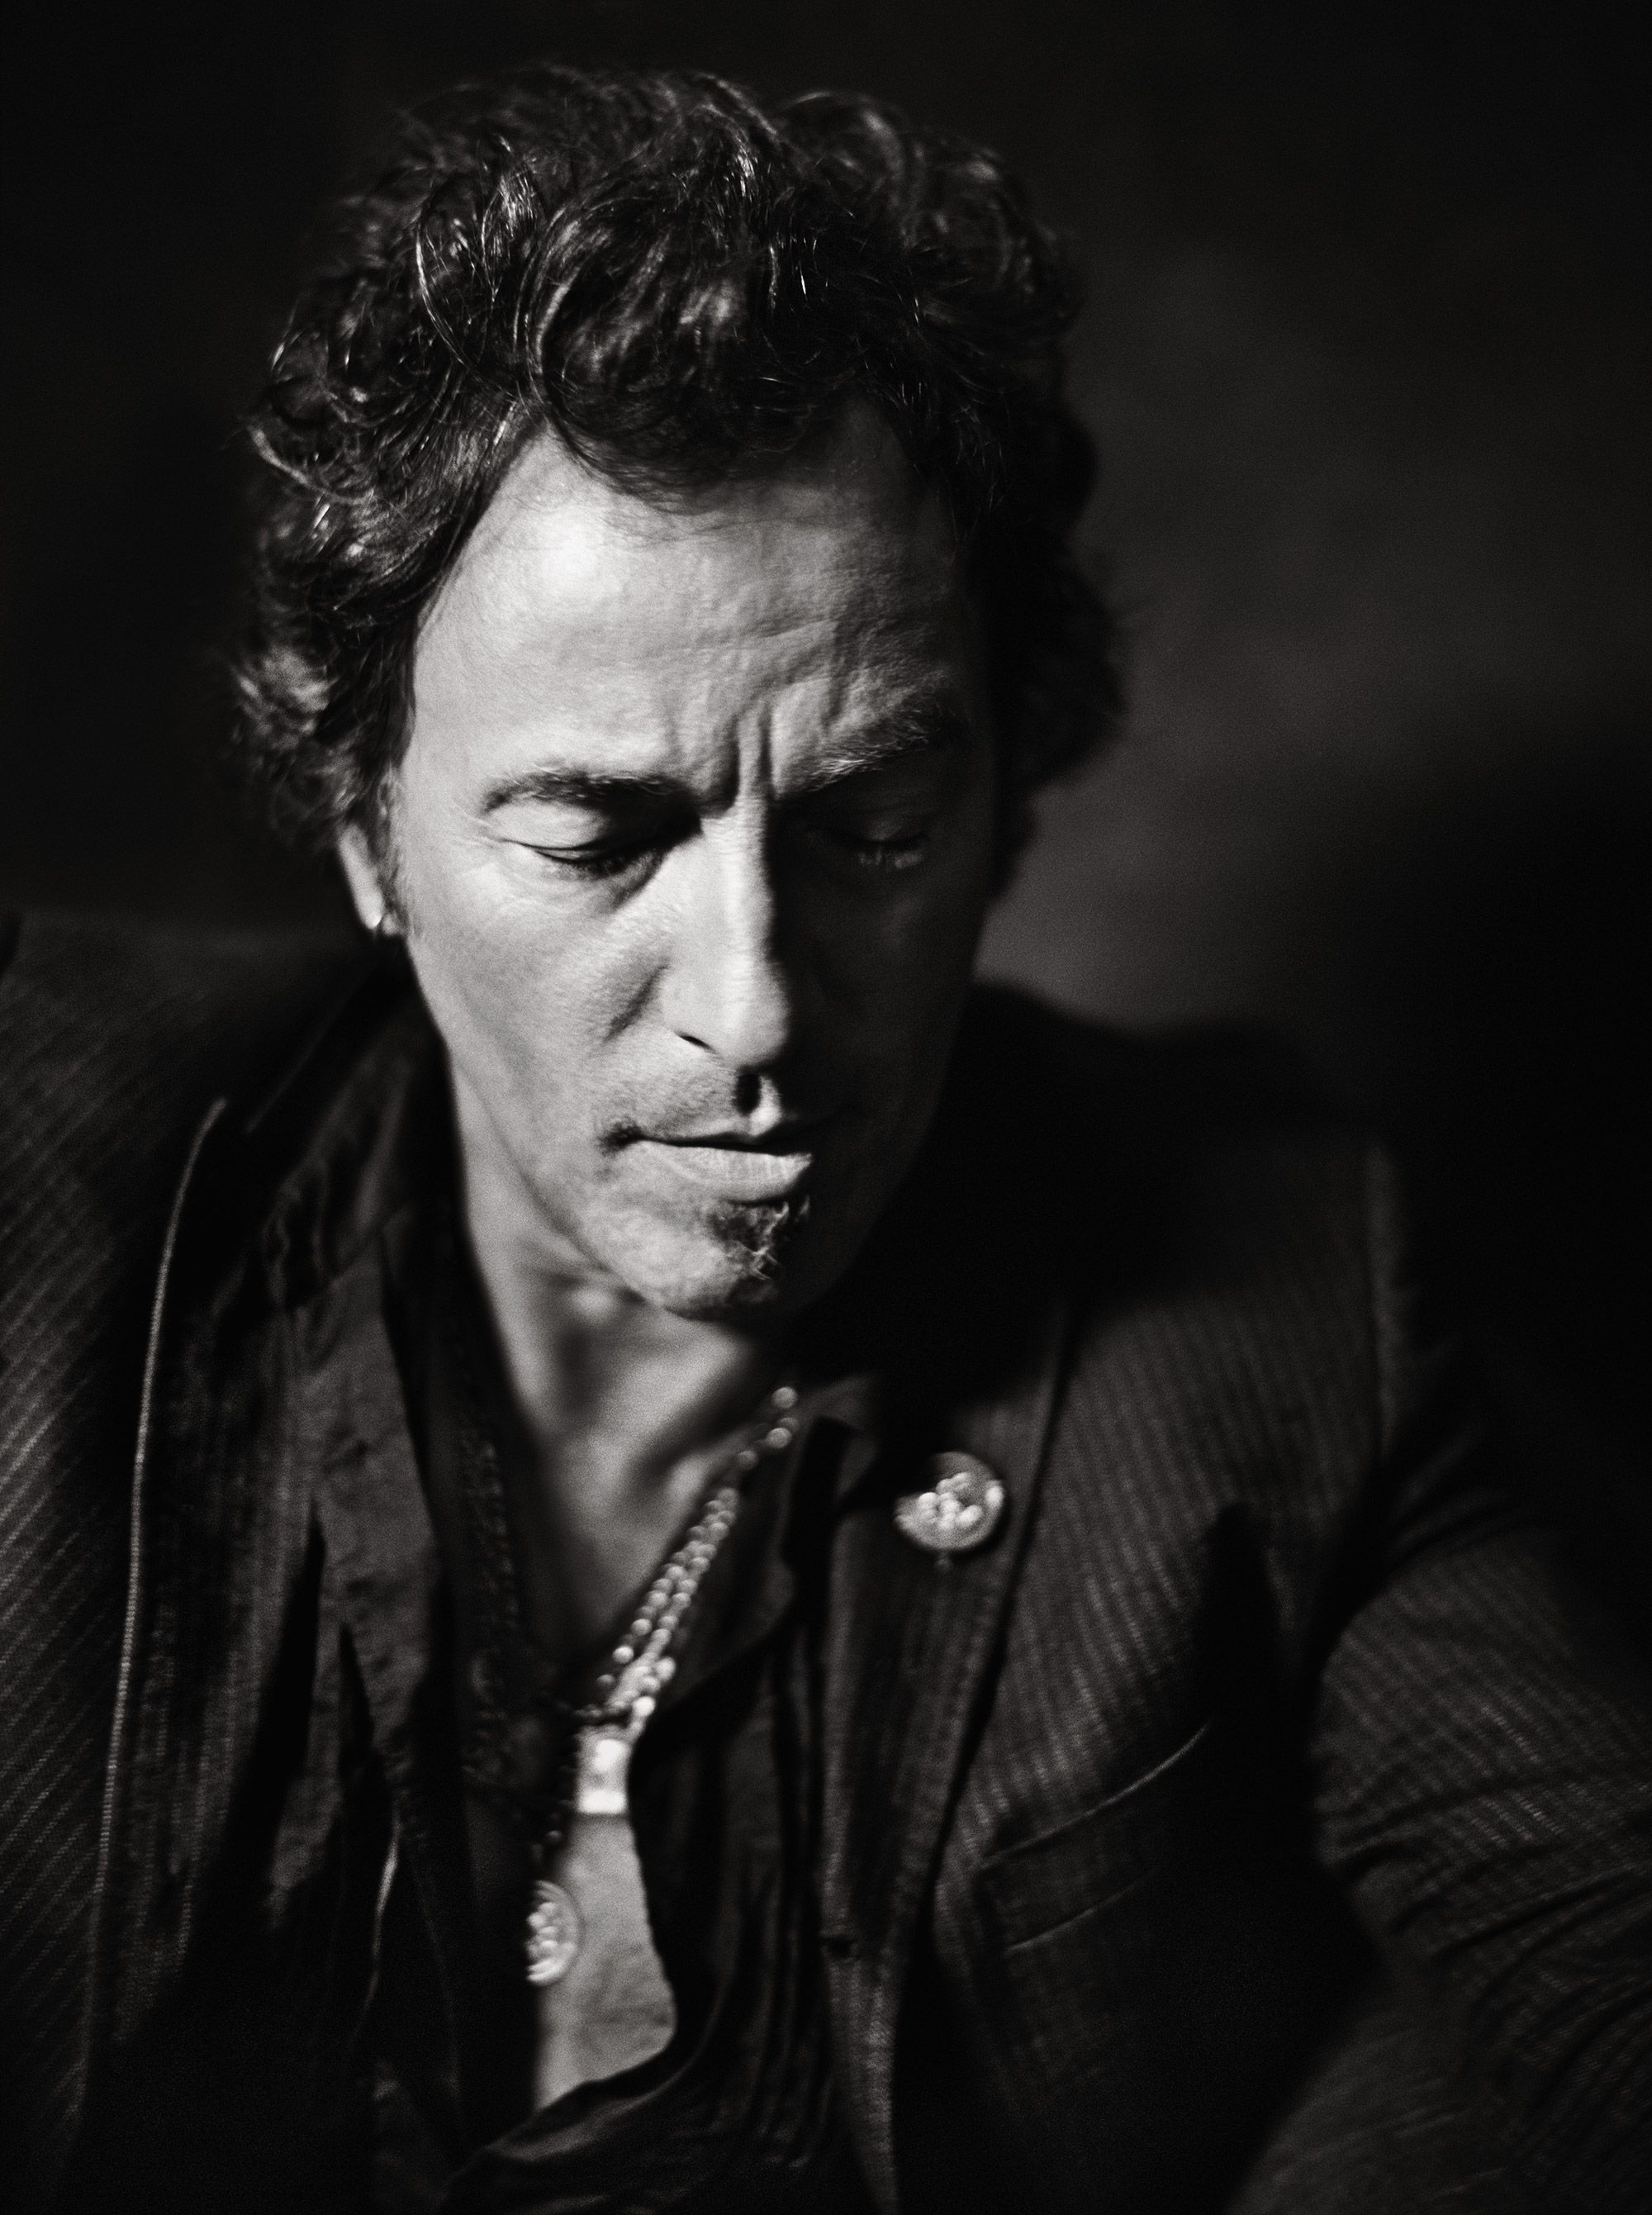 10 Amazing Photos of Rock Stars Bruce springsteen, Bruce